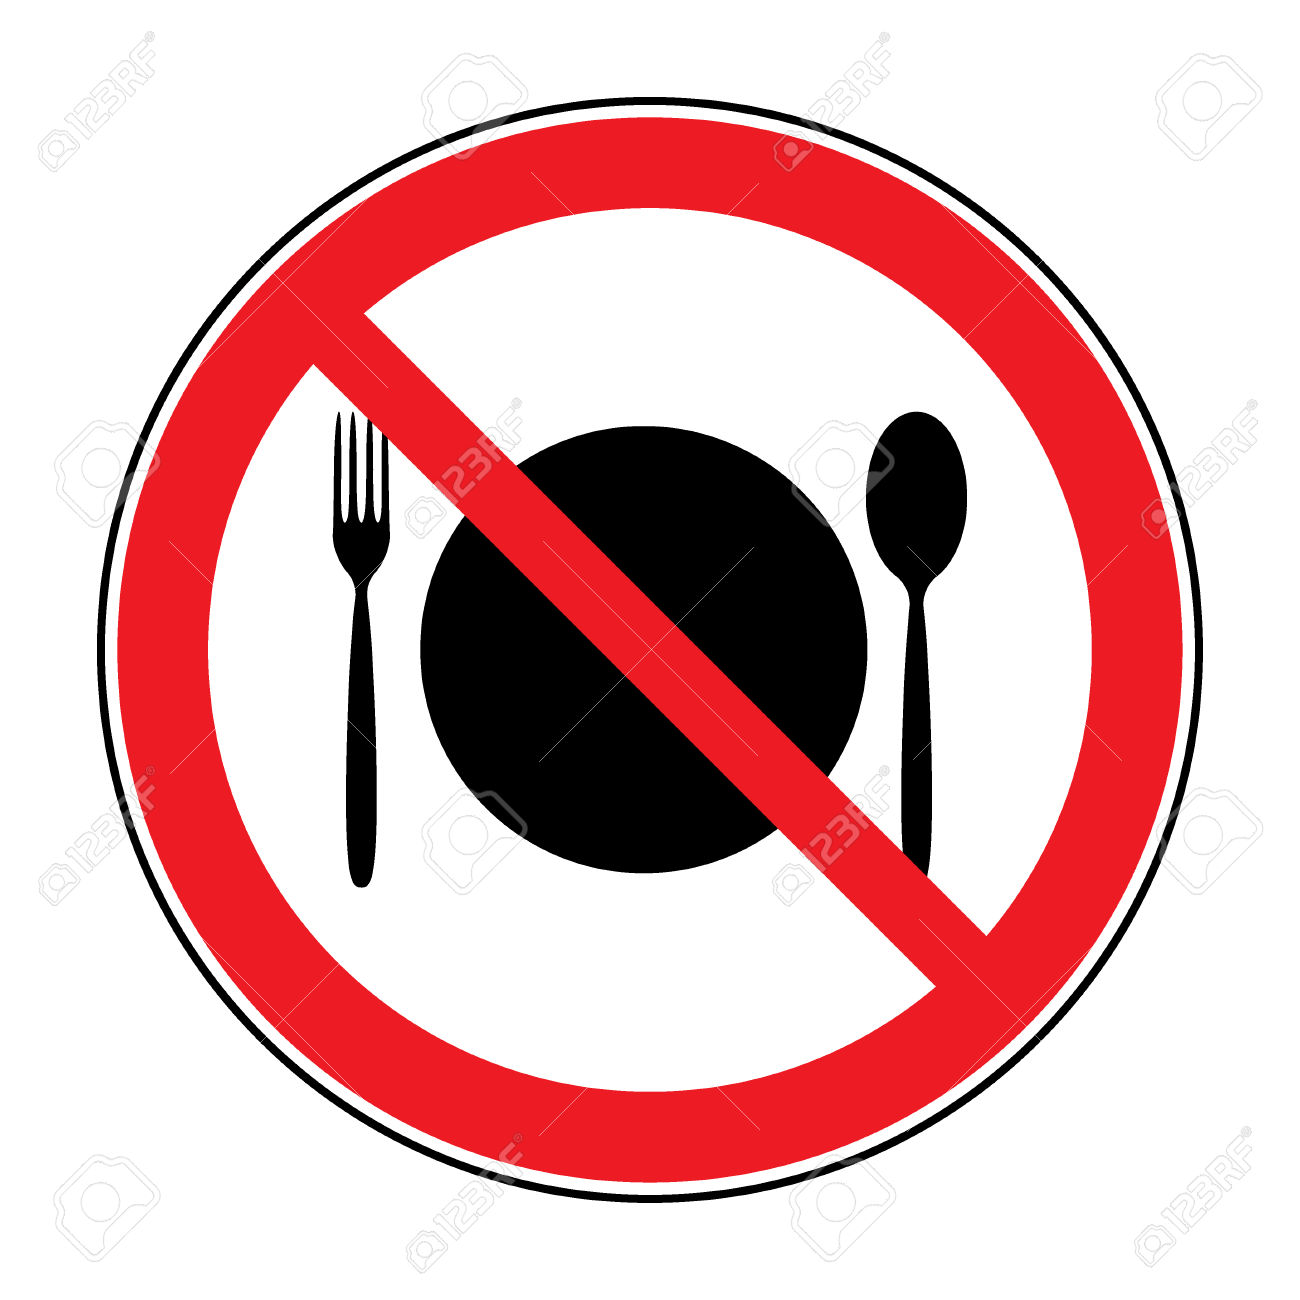 Do Not Eat Icon. Cutlery Symbol. Knife And Fork. No Food Symbol.